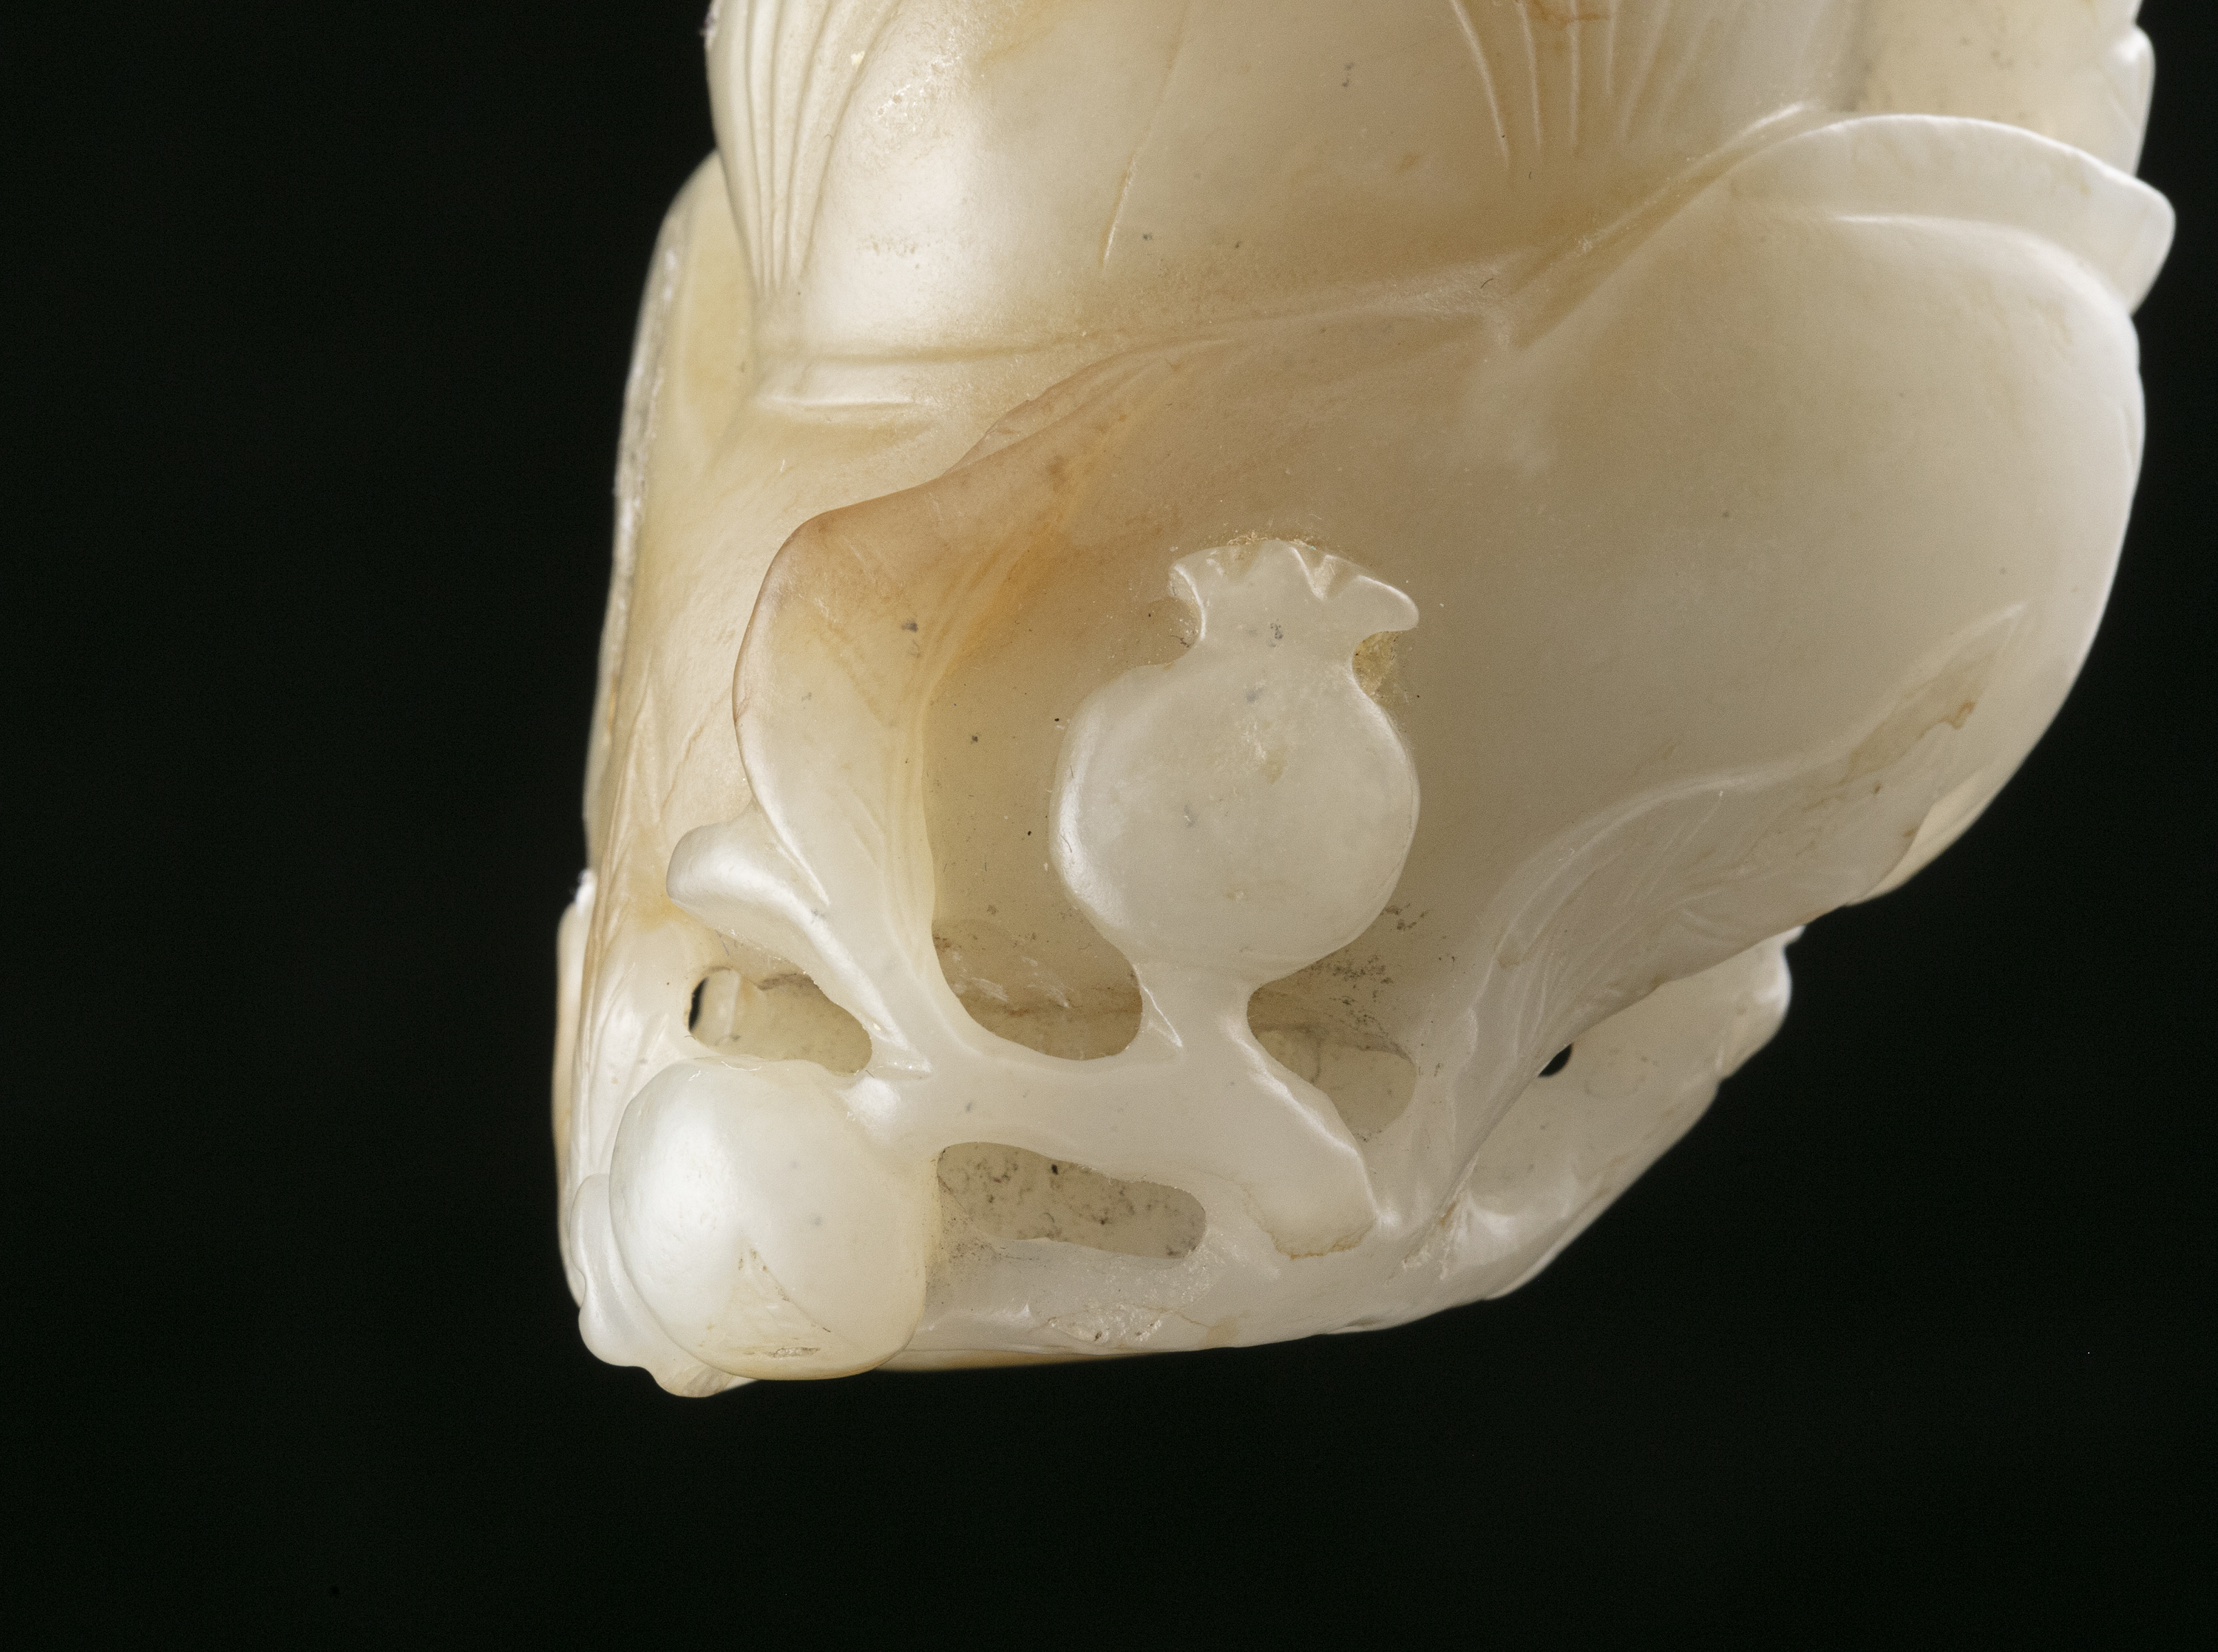 A WHITE AND RUSSETS JADE CARVING OF A HOHO / HEHE / ERXIAN / 和合二仙 China The boy is depicted grasping - Image 11 of 20